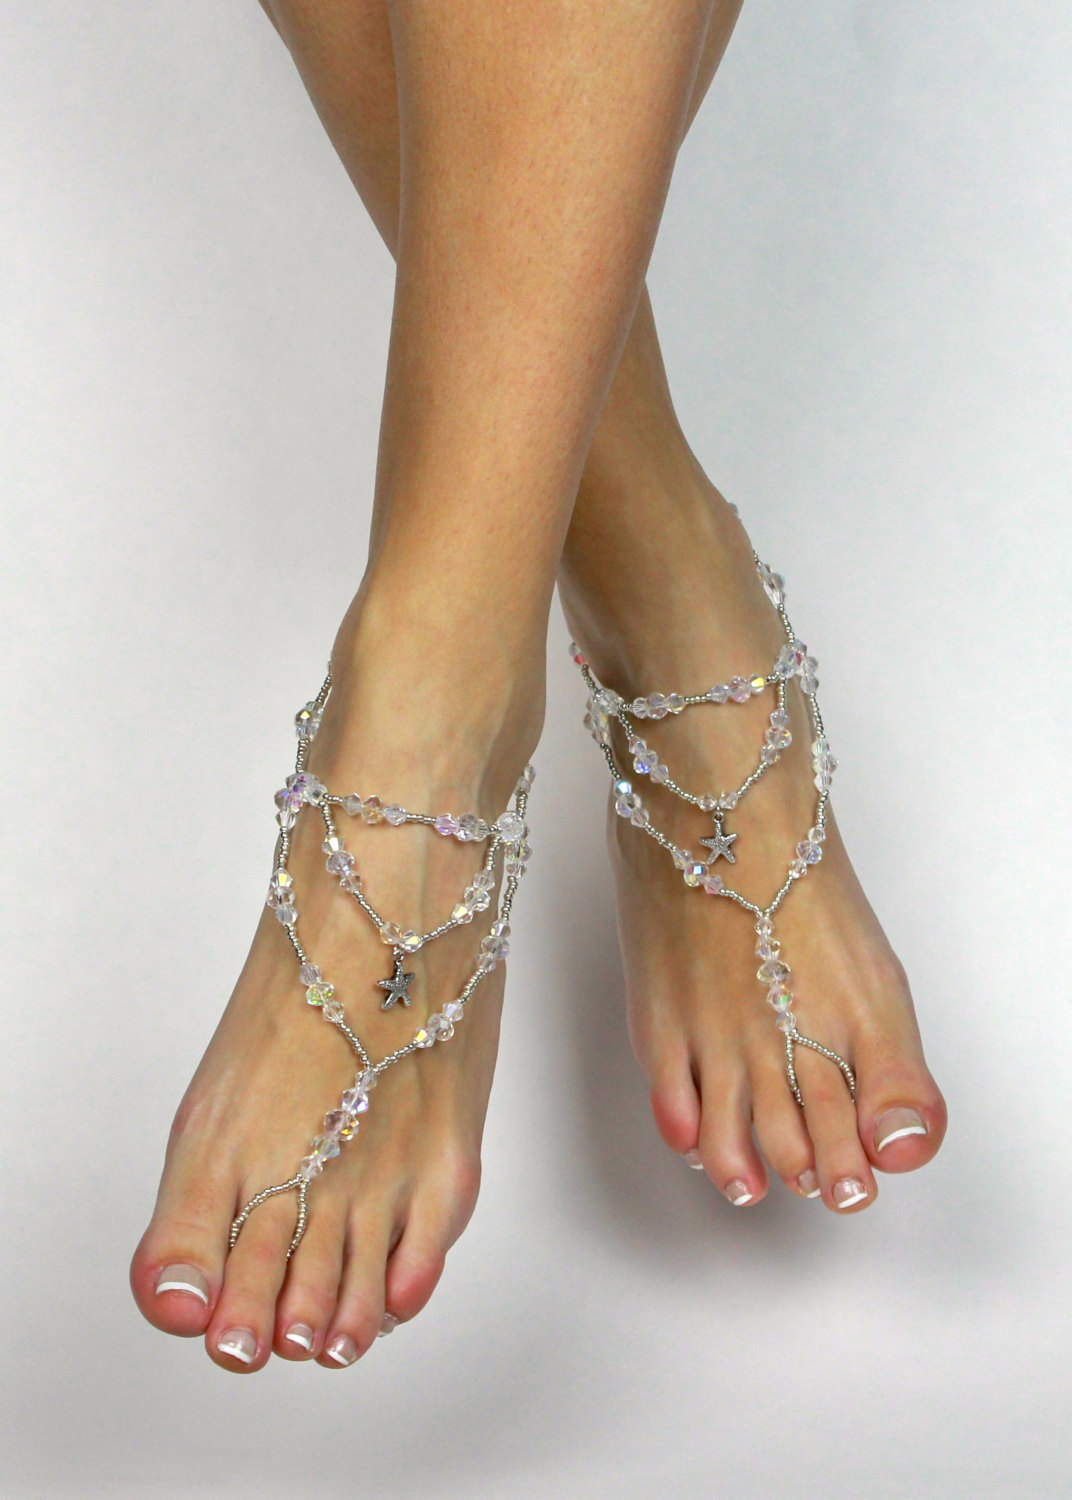 ae1cfe583e5 Swarovski Starfish Barefoot Sandals Foot Jewelry Beach Wedding Sandals  Anklet for Bride Wedding Foot Jewelry Beach